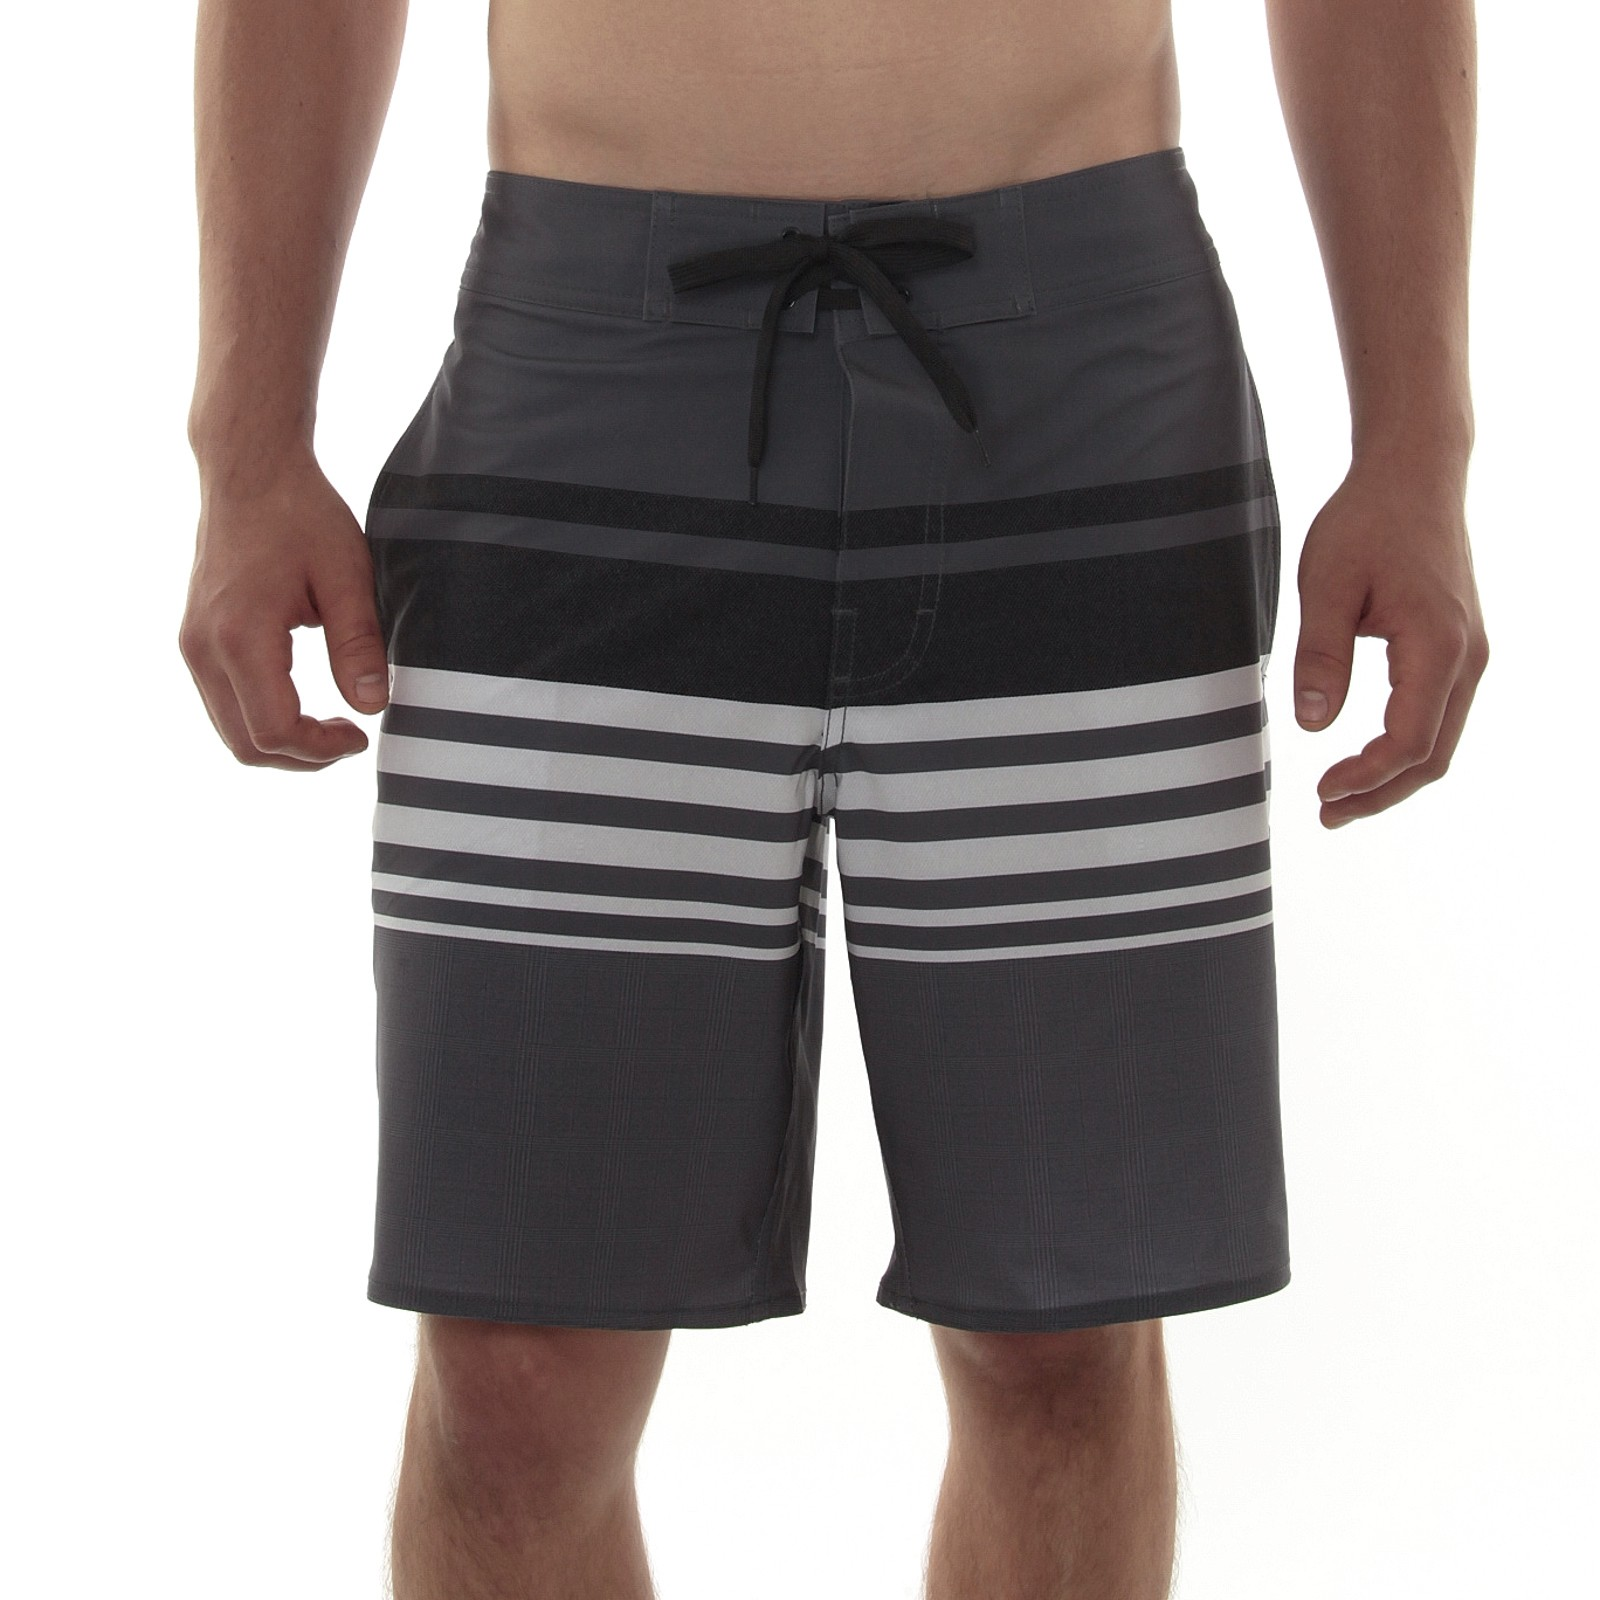 Shop Men's Shorts & Boardshorts at Vans. Browse a large variety of sizes, lengths & colors. Perfect for School, Work, the Beach, or Around Town.